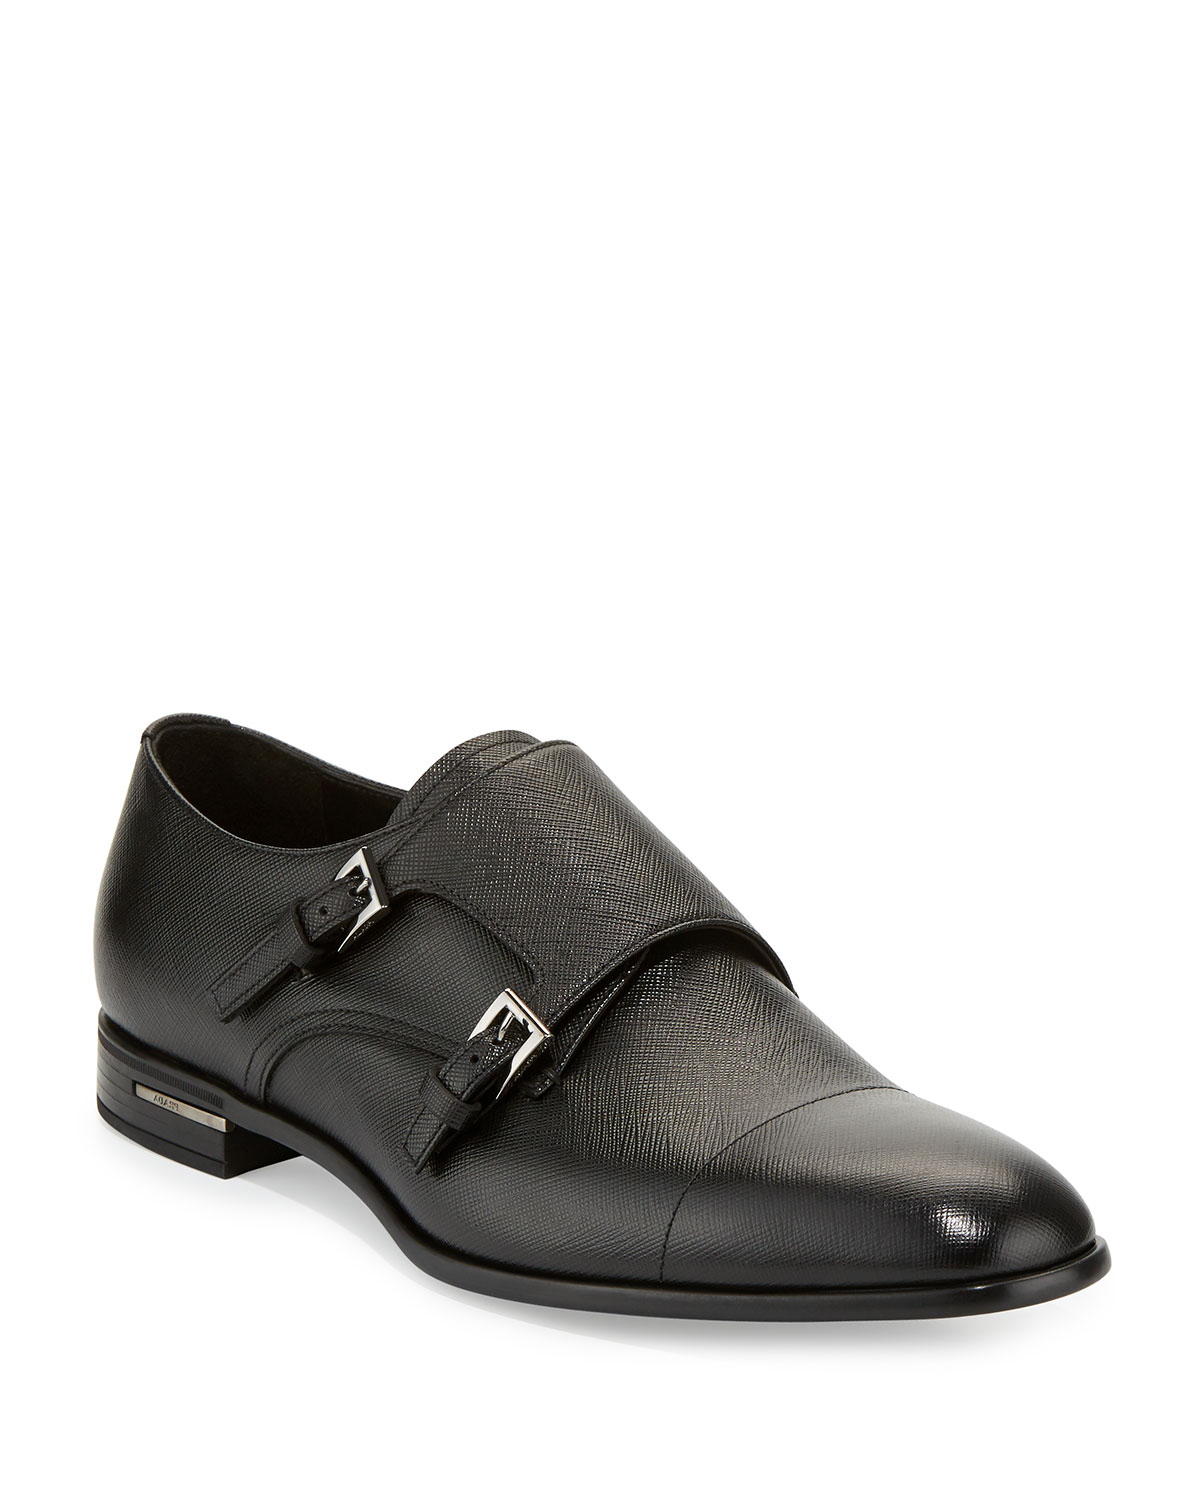 d159868968 Saffiano Leather Double-Monk Shoe, Black